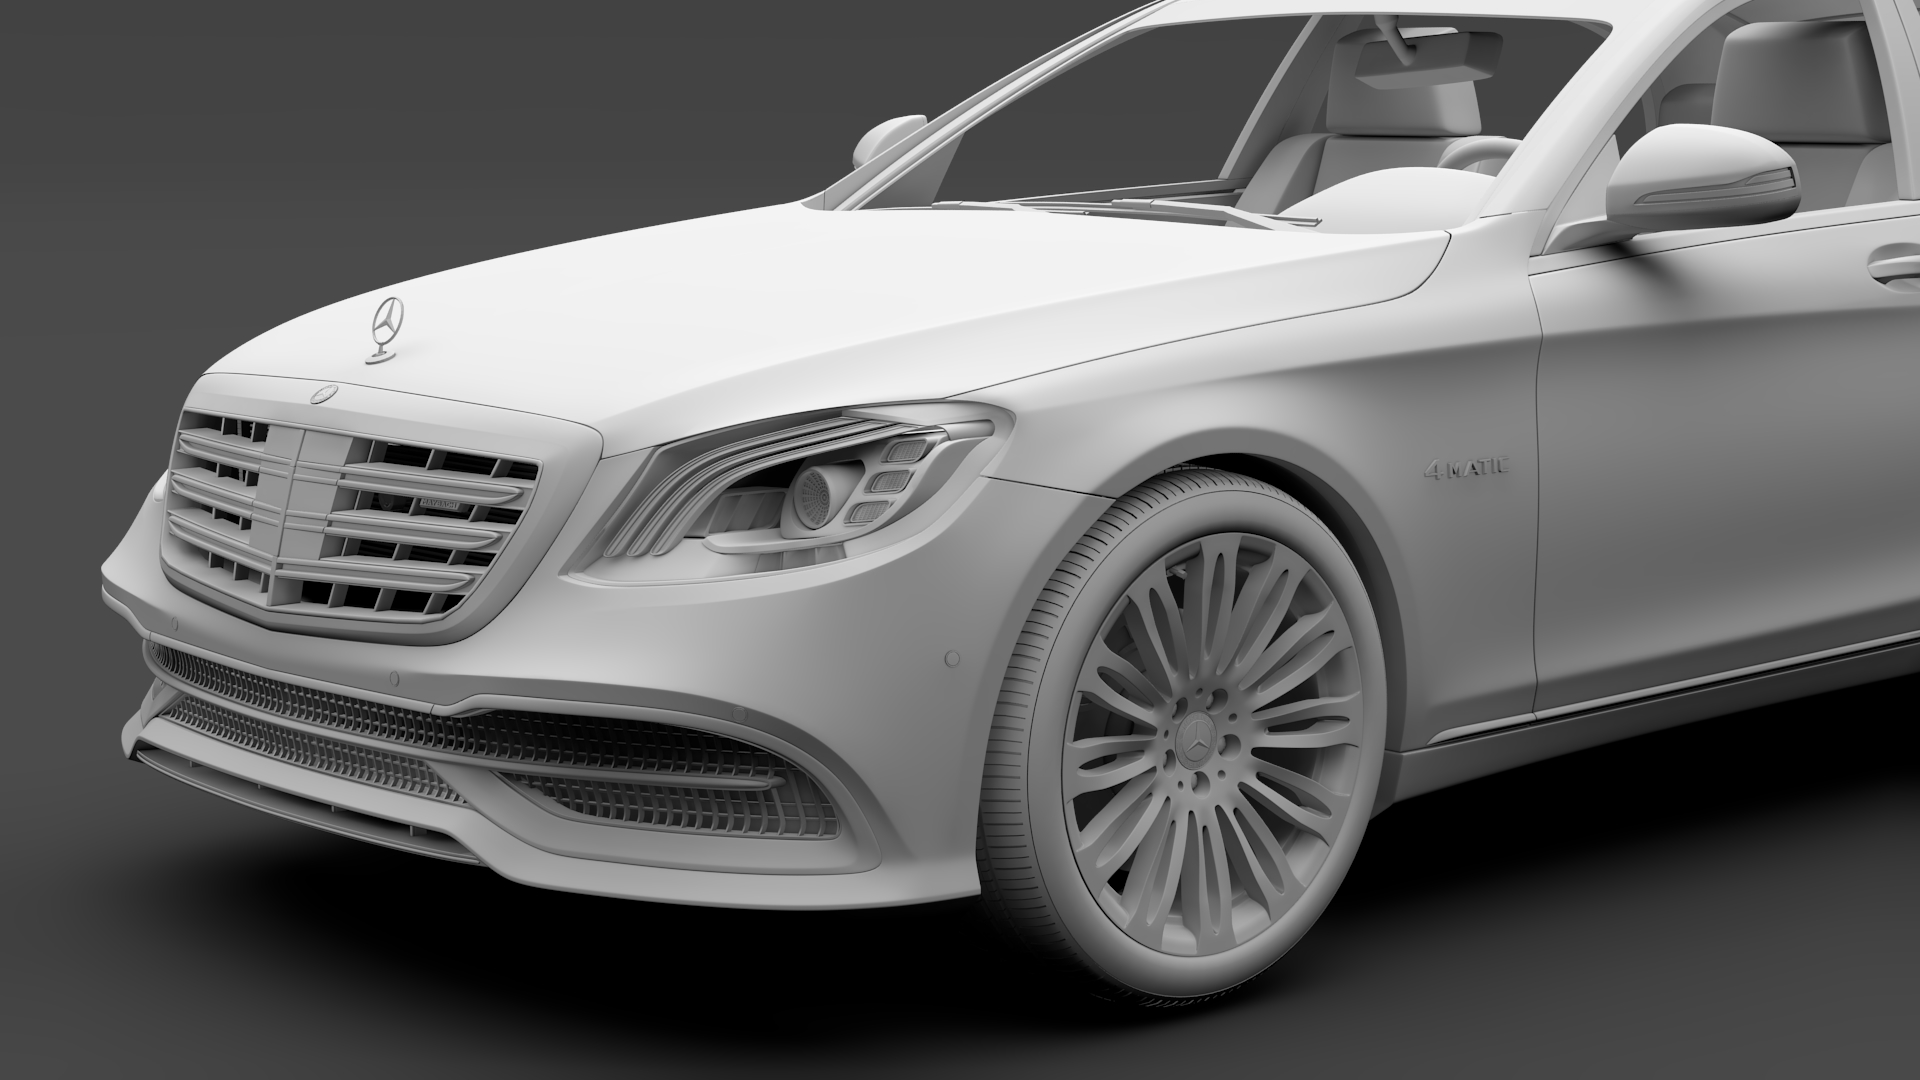 mercedes maybach s 560 4matic x222 2018 3d model 3ds max fbx c4d lwo ma mb hrc xsi obj 284439